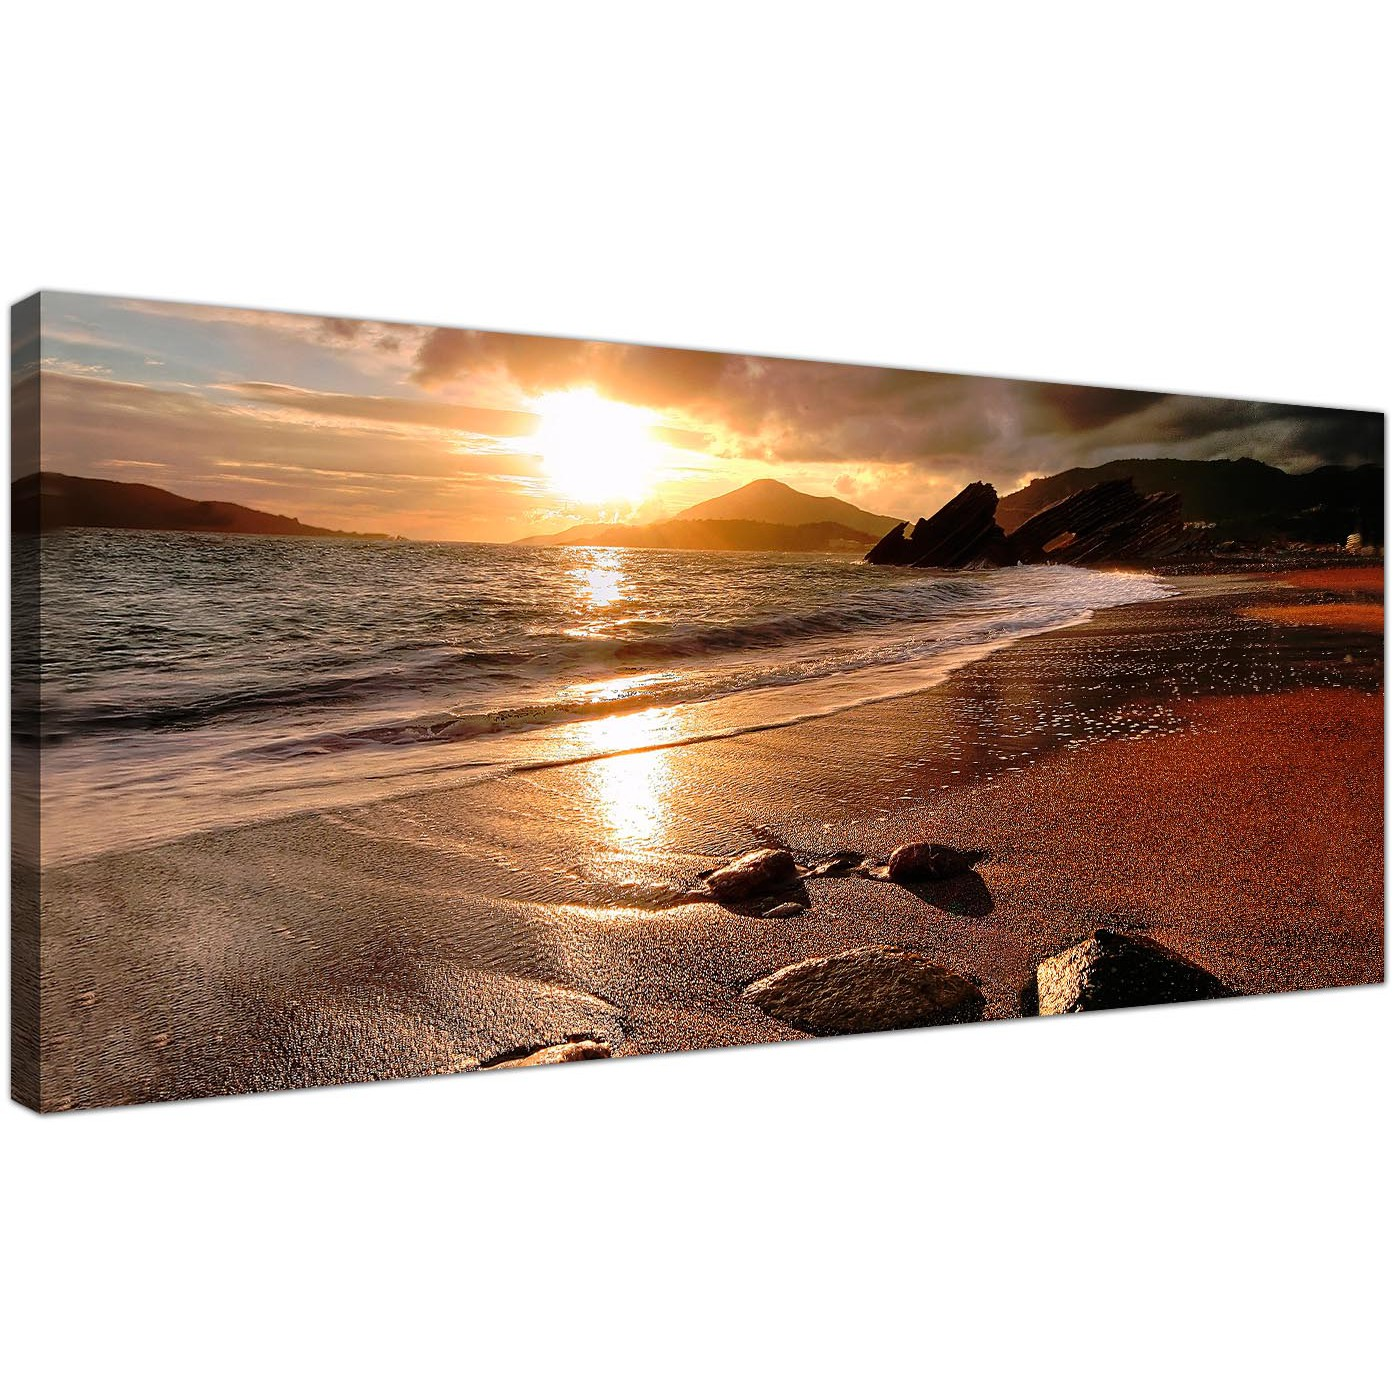 Catalog Shopping Home Decor Wide Canvas Prints Of A Beach Sunset For Your Living Room